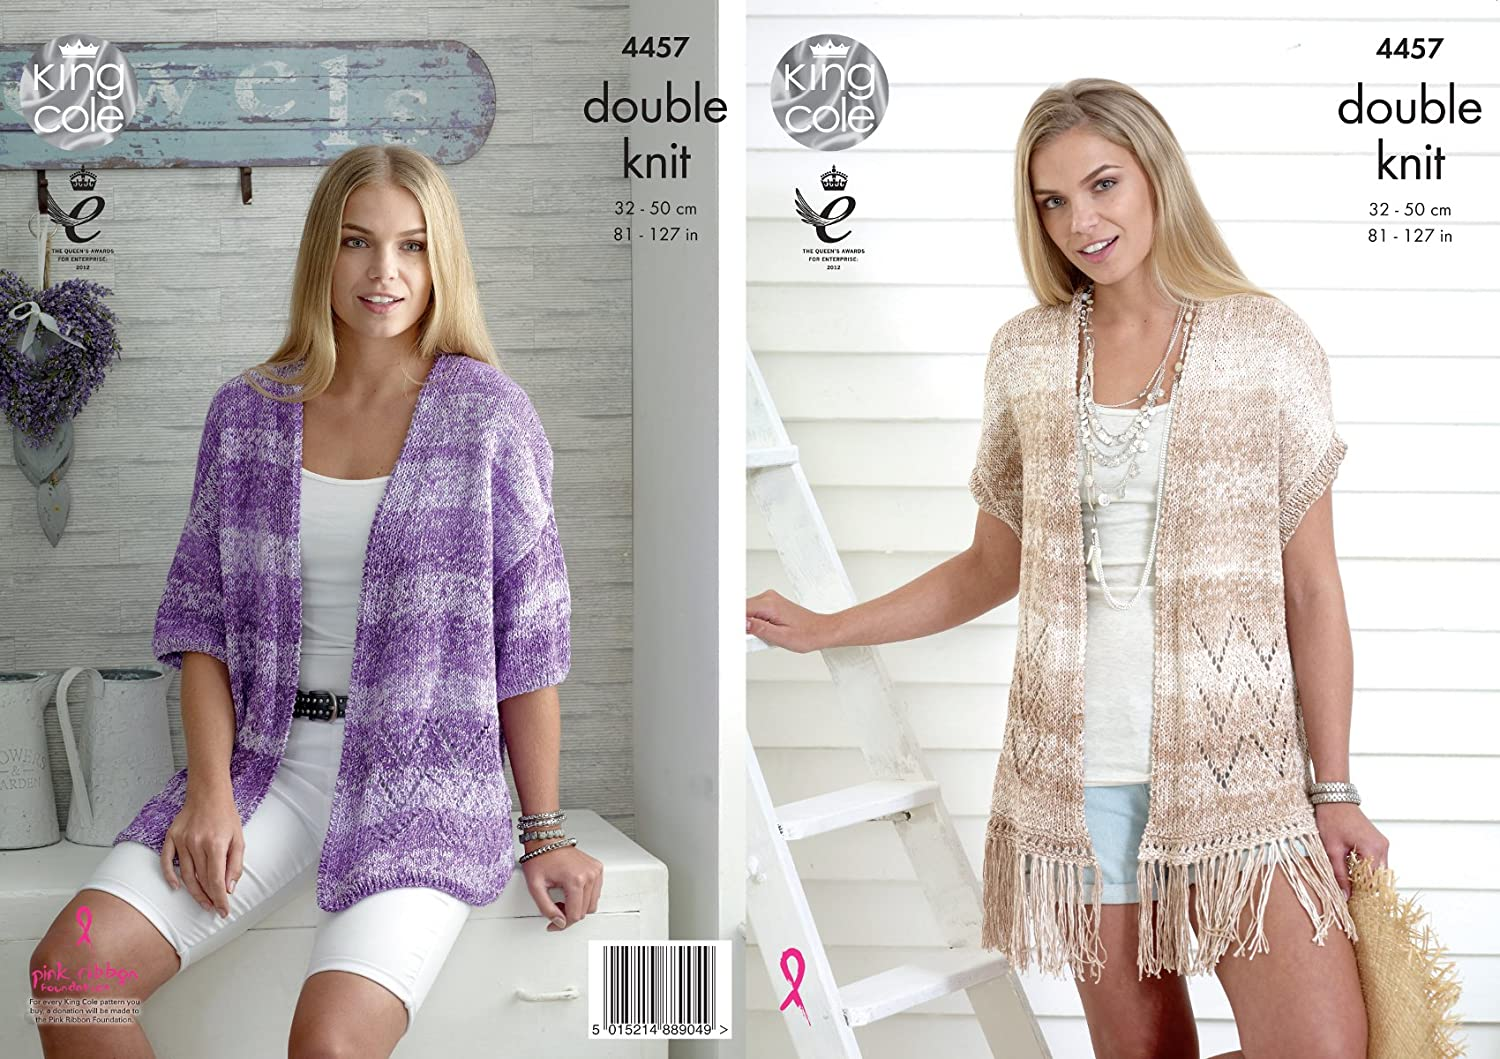 King Cole Ladies Double Knitting Pattern Womens Lace Effect Cardigan & Waistcoat Vogue DK (4457)